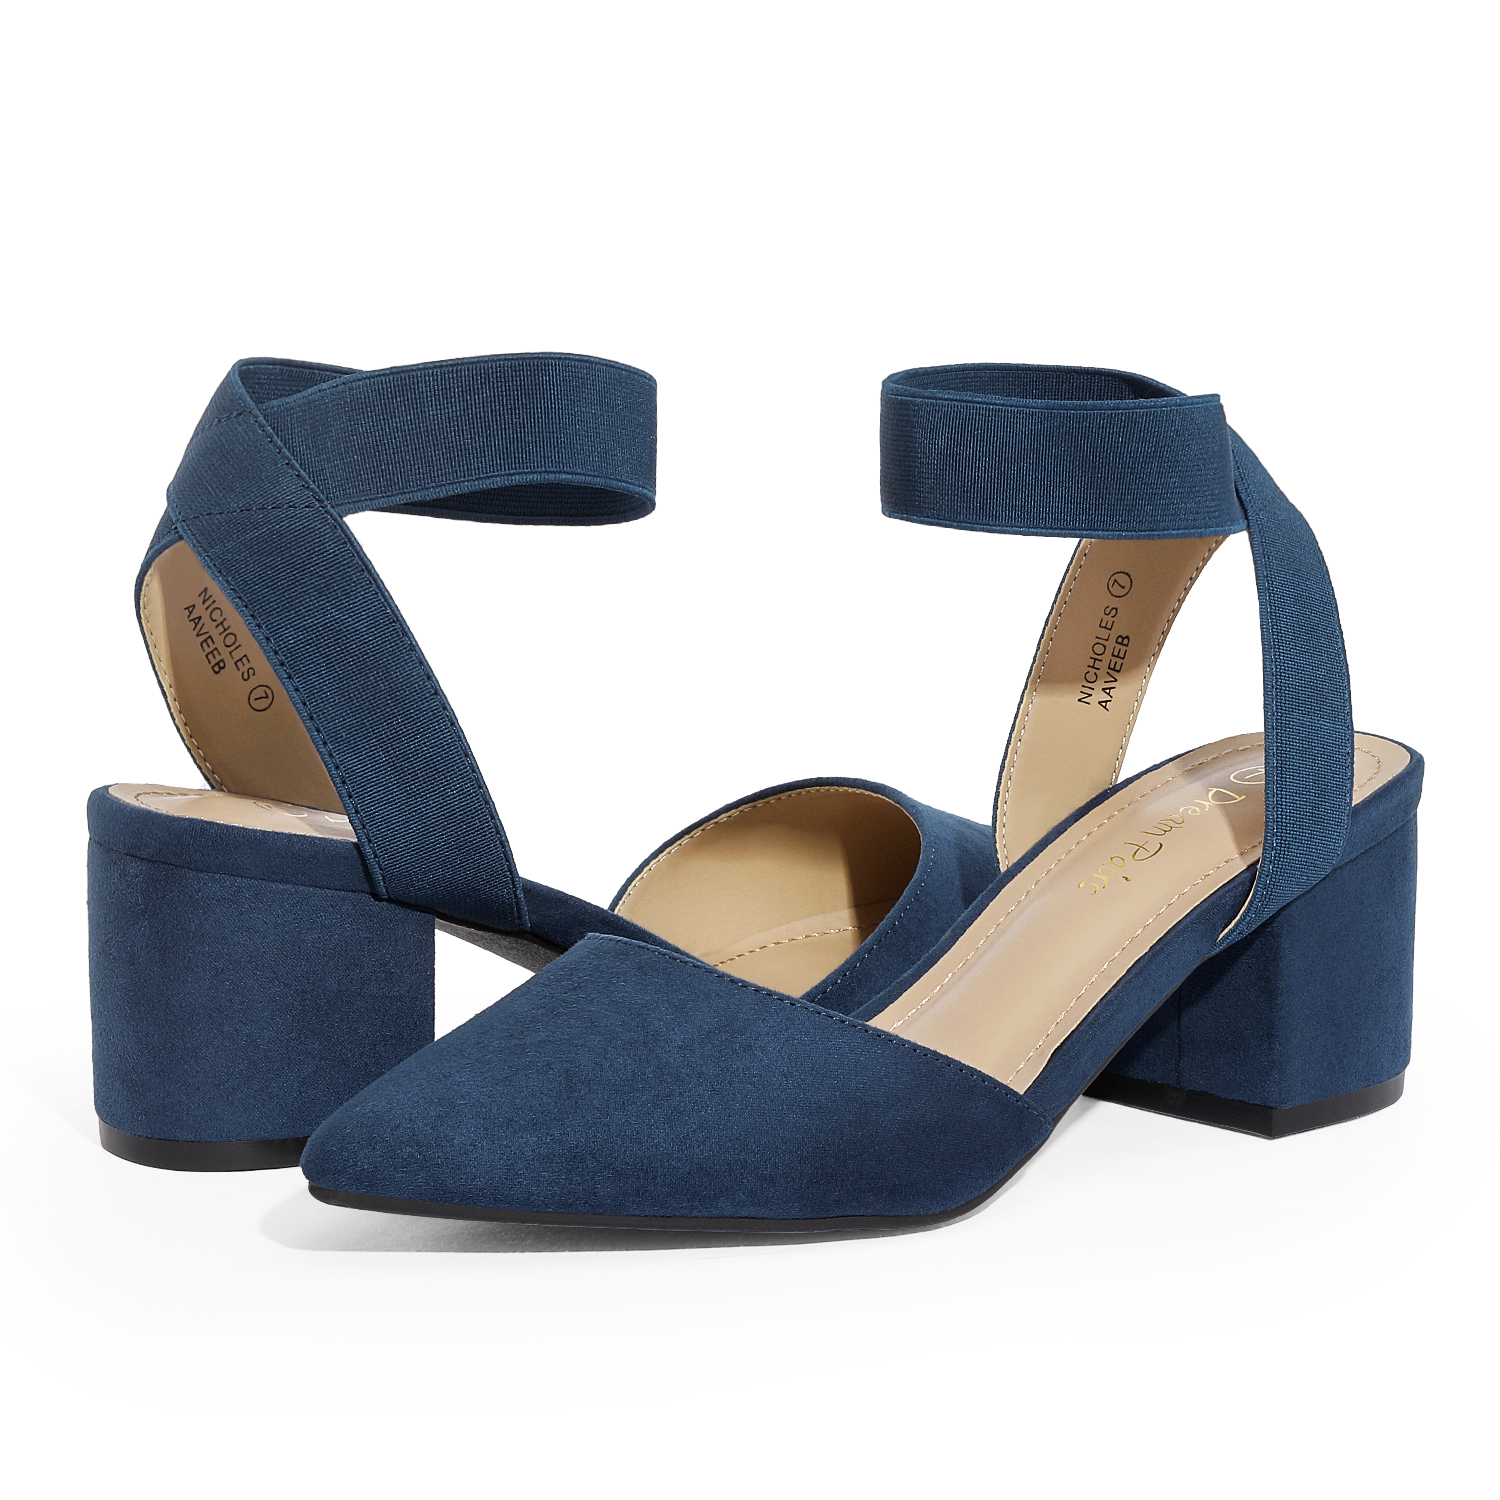 thumbnail 45 - Women-039-s-Elastic-Ankle-Strap-Pointed-Toe-Pump-Shoes-Low-Chunky-Heel-Dress-Pumps